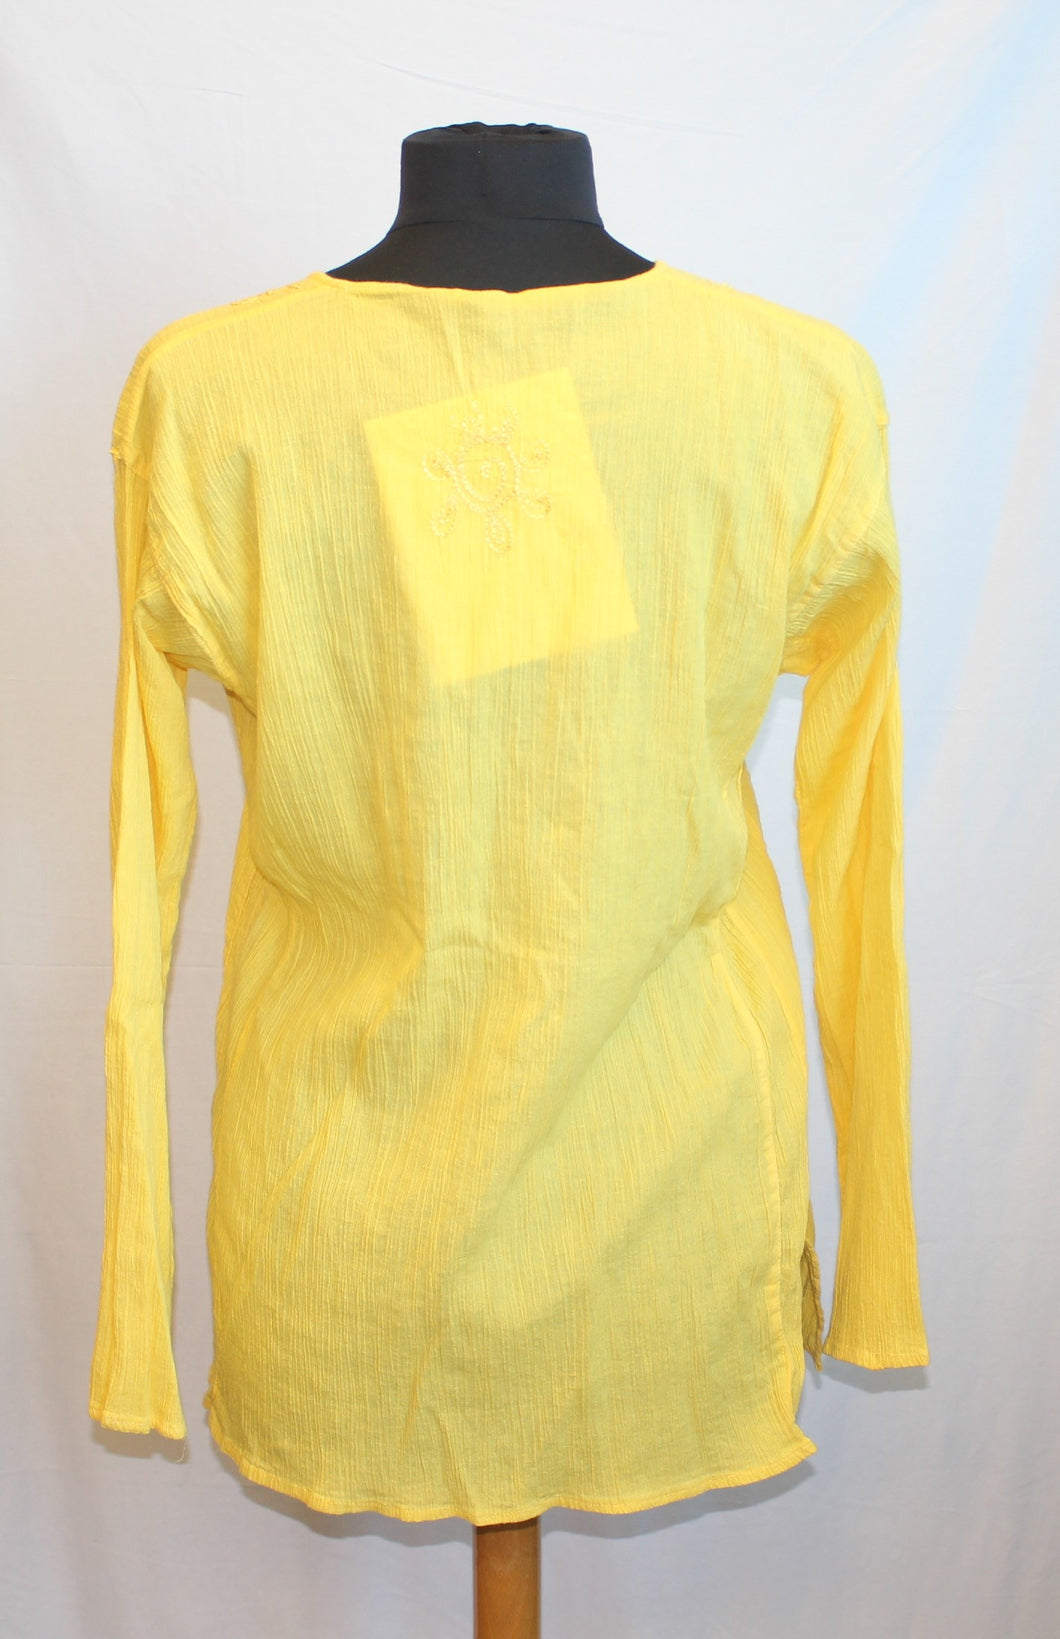 Women's yellow shirt      Size M                4/7A